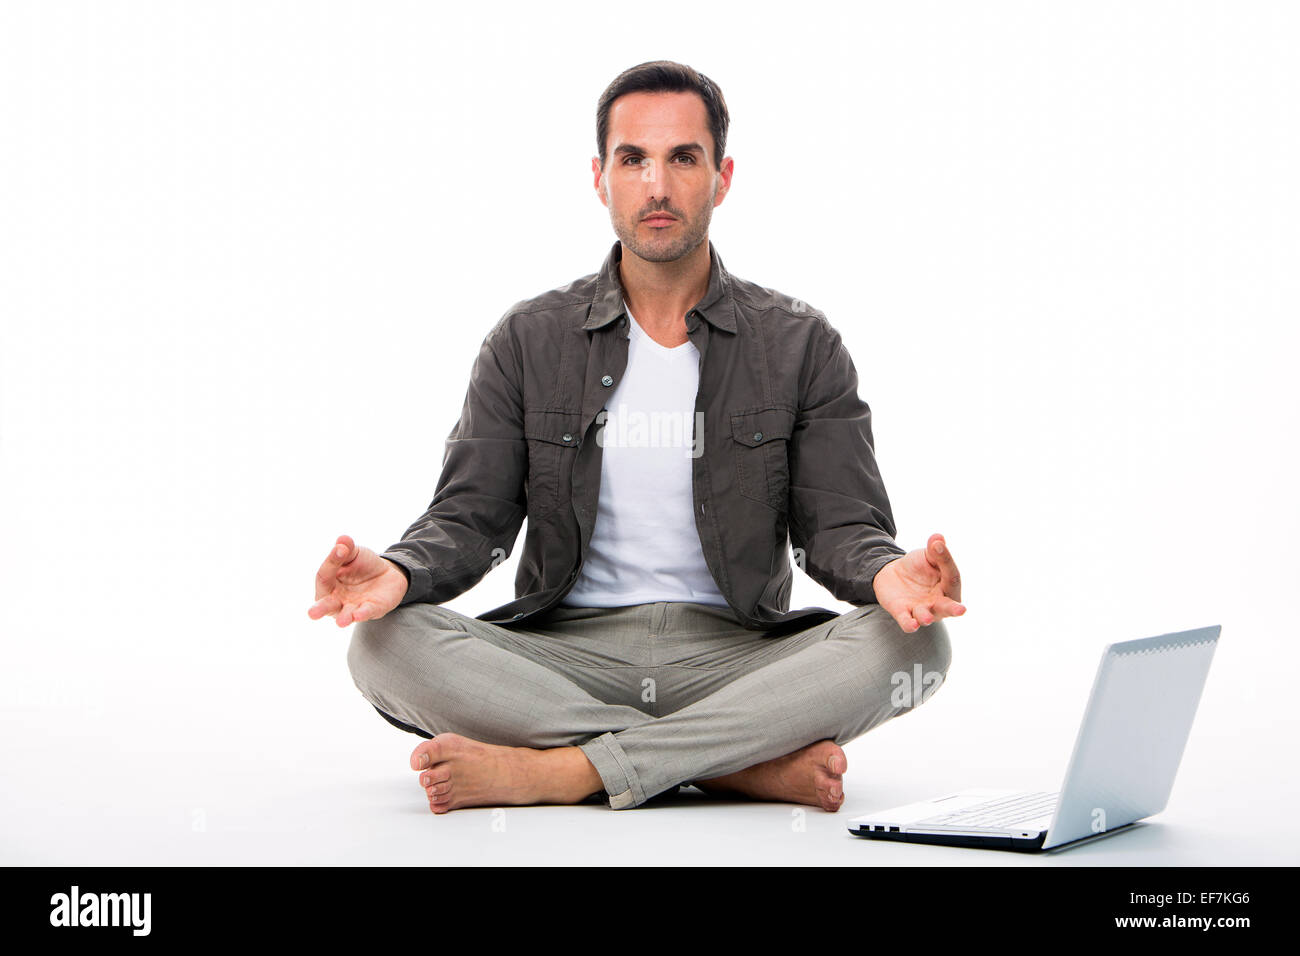 Man sitted on the floor looking at the camera and practicing yoga with laptop next to him - Stock Image